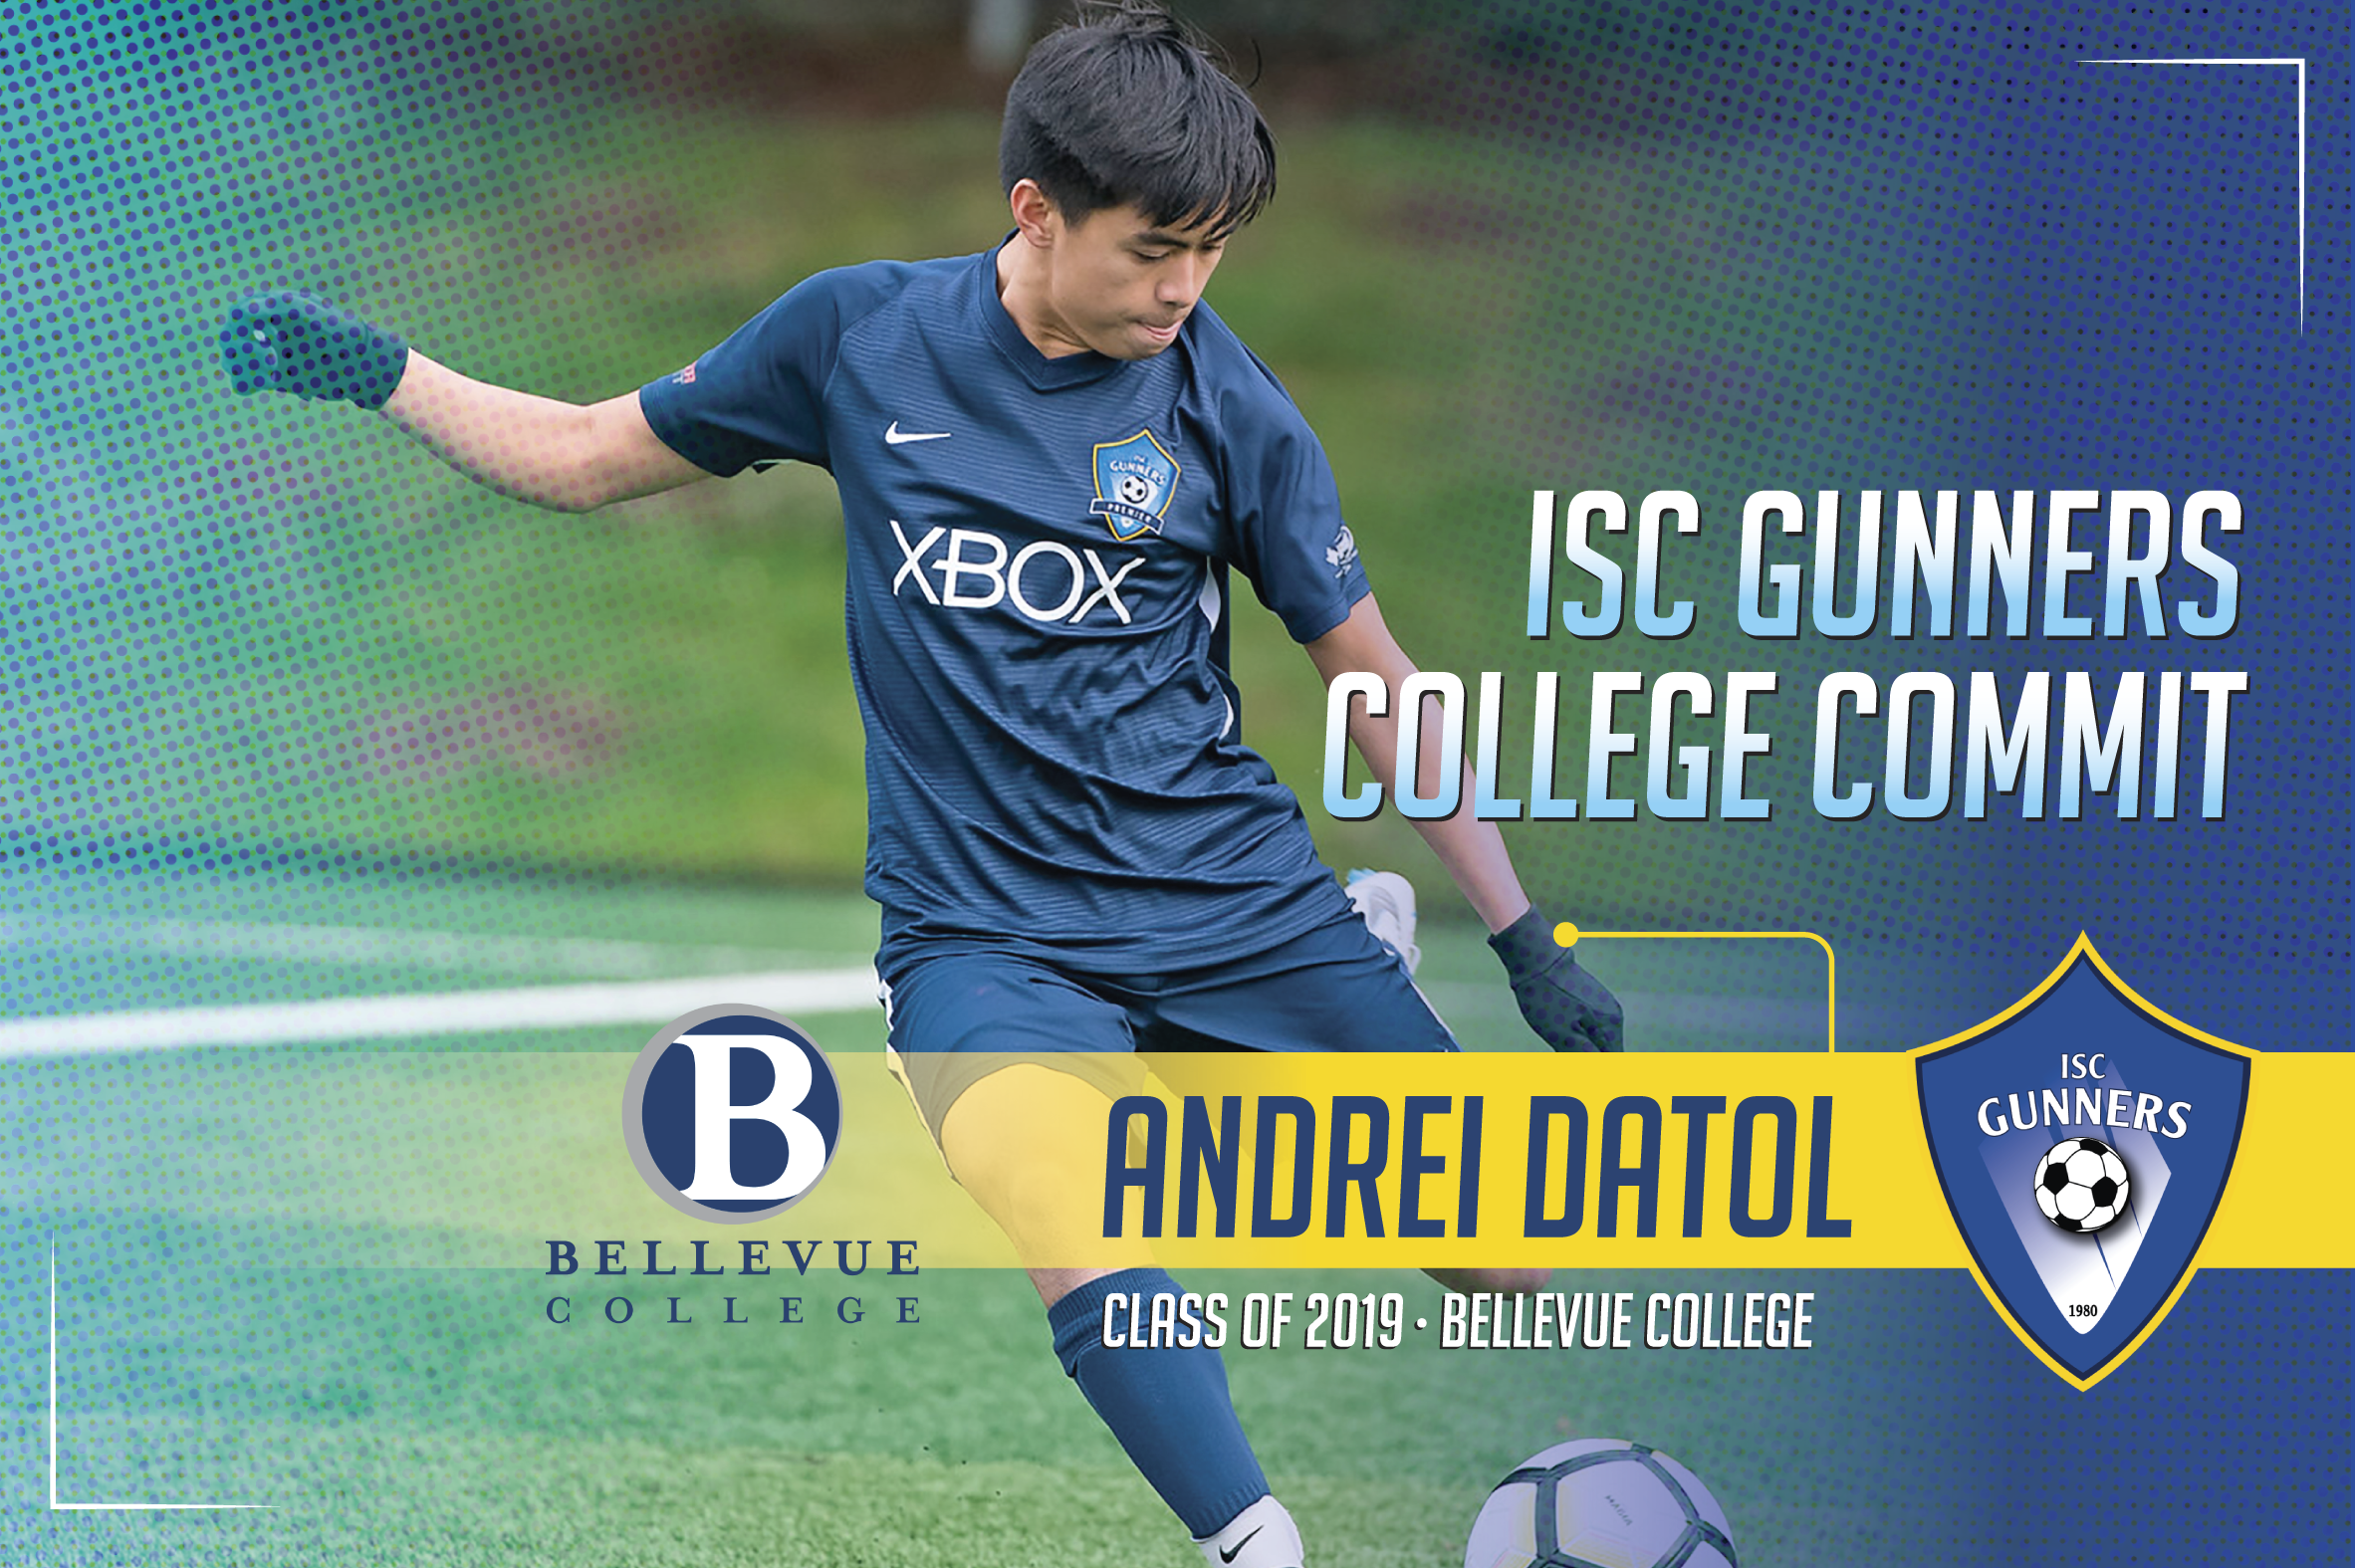 ISC Gunners College Commitments #5 (Only 1 x Graphic/Flyer)